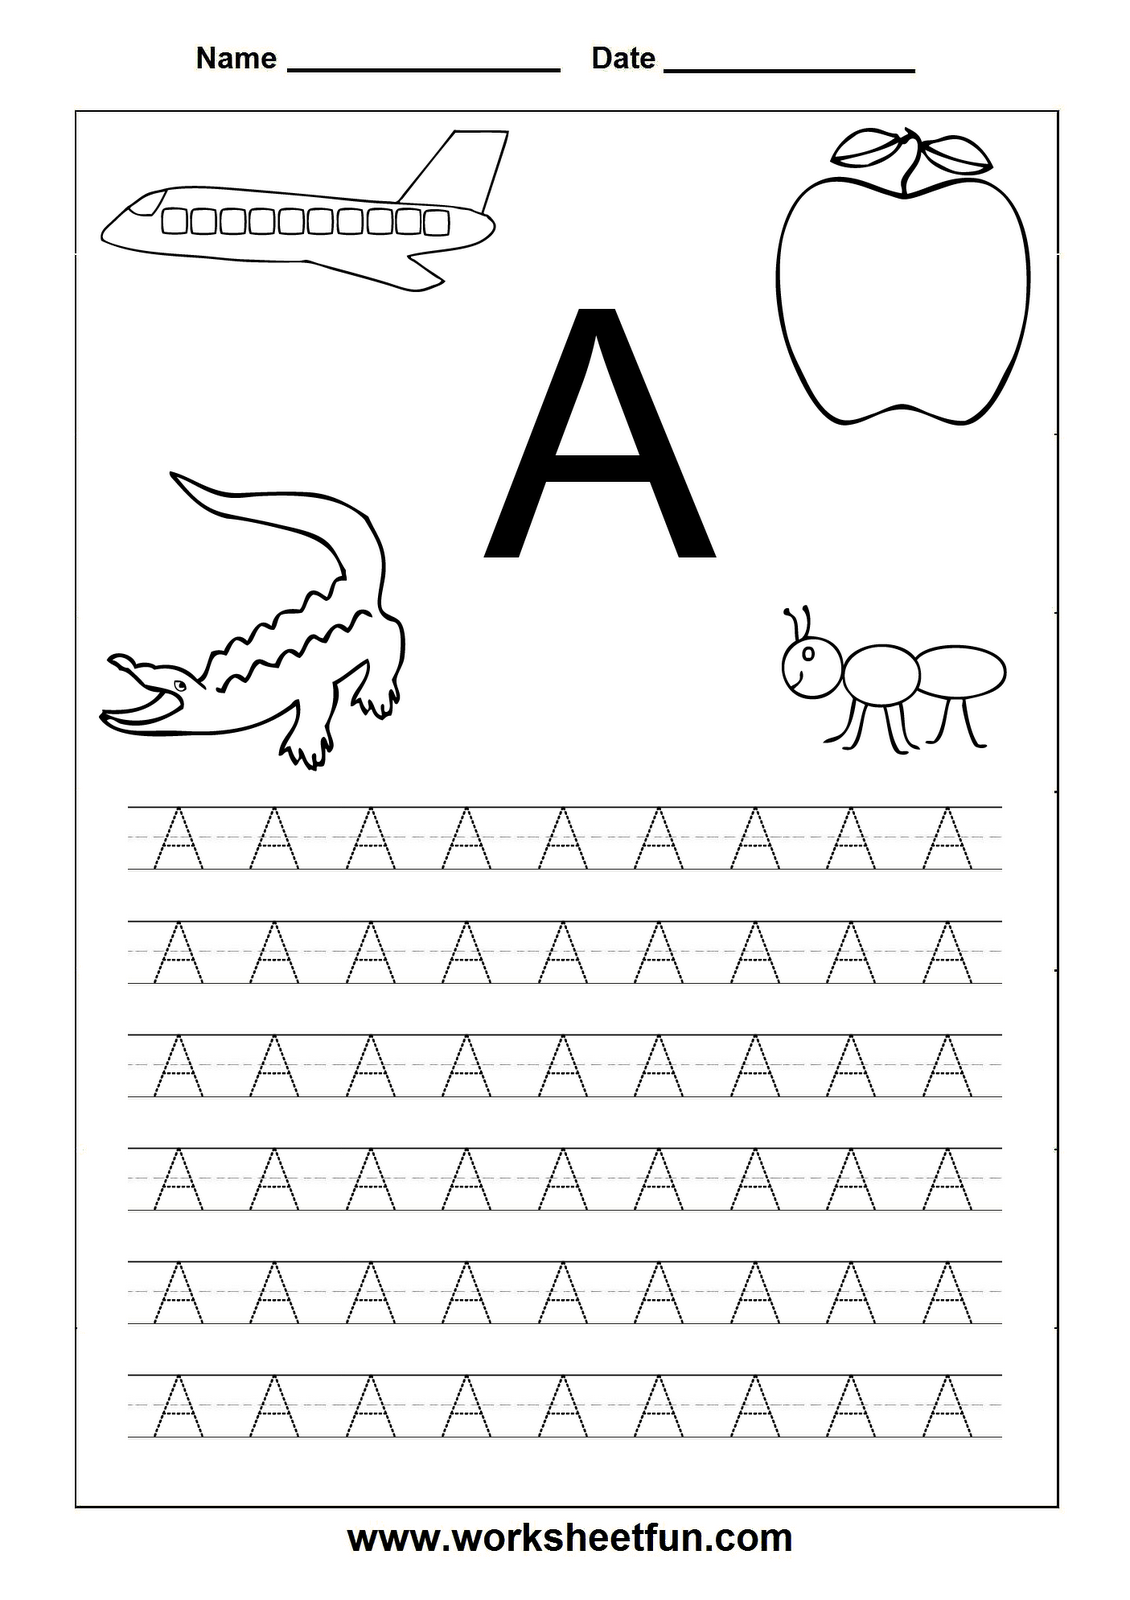 worksheet Letter A Worksheets For Preschoolers letter worksheets for kindergarten printable letters pinterest printable